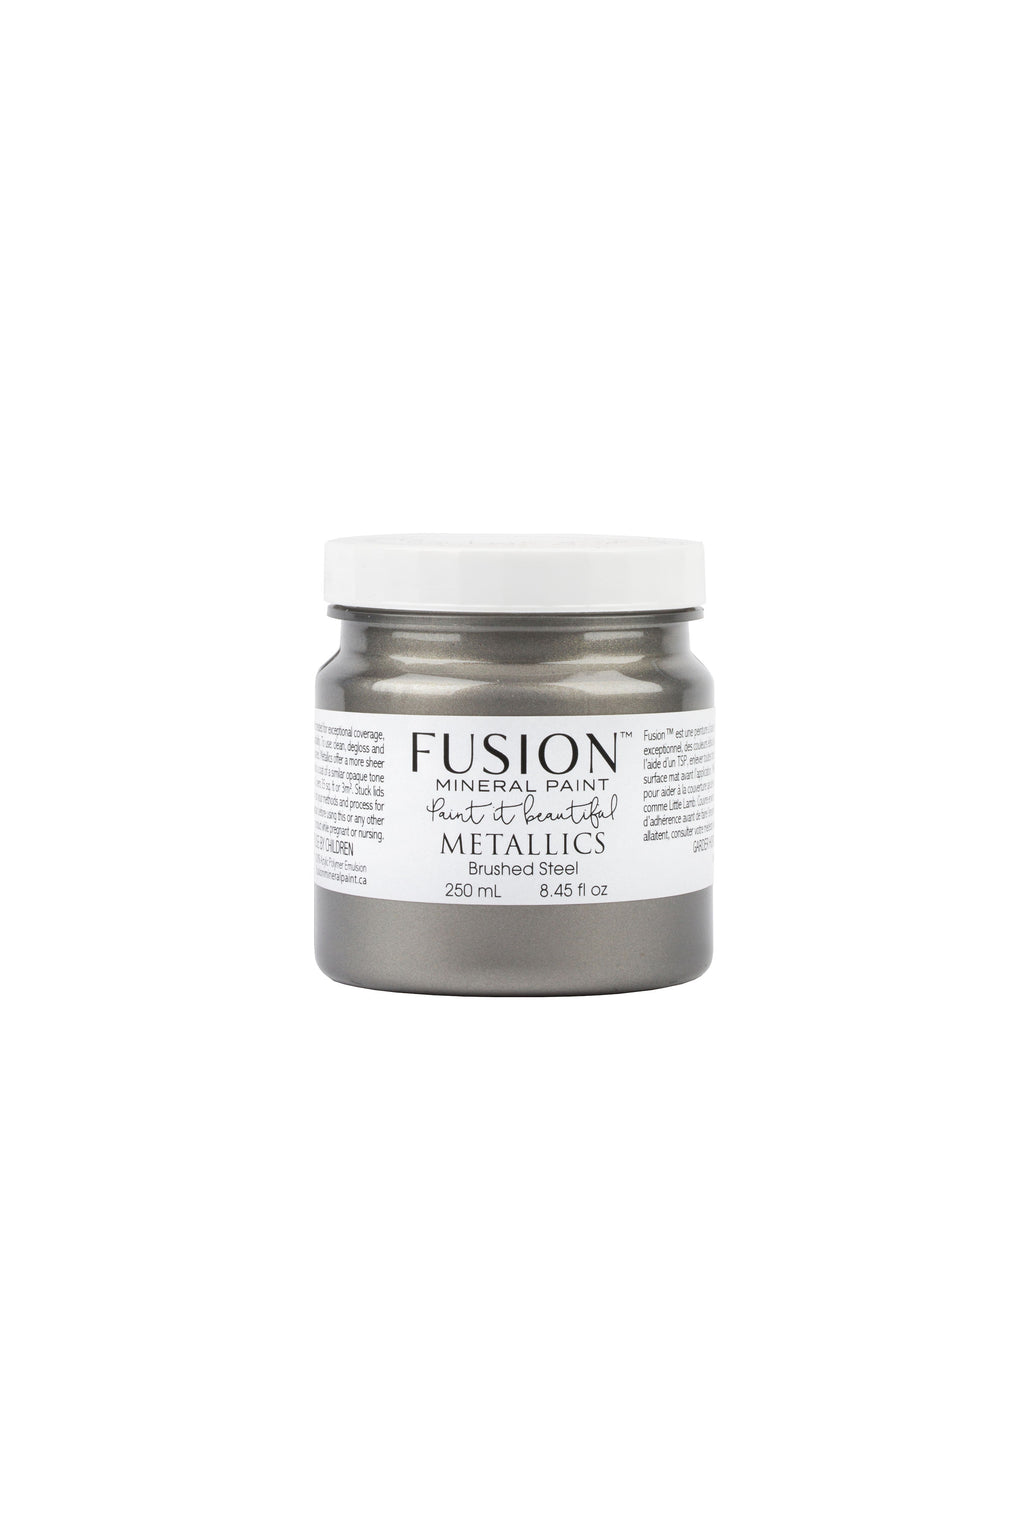 Fusion Mineral Paint-Metallics Brushed Steel